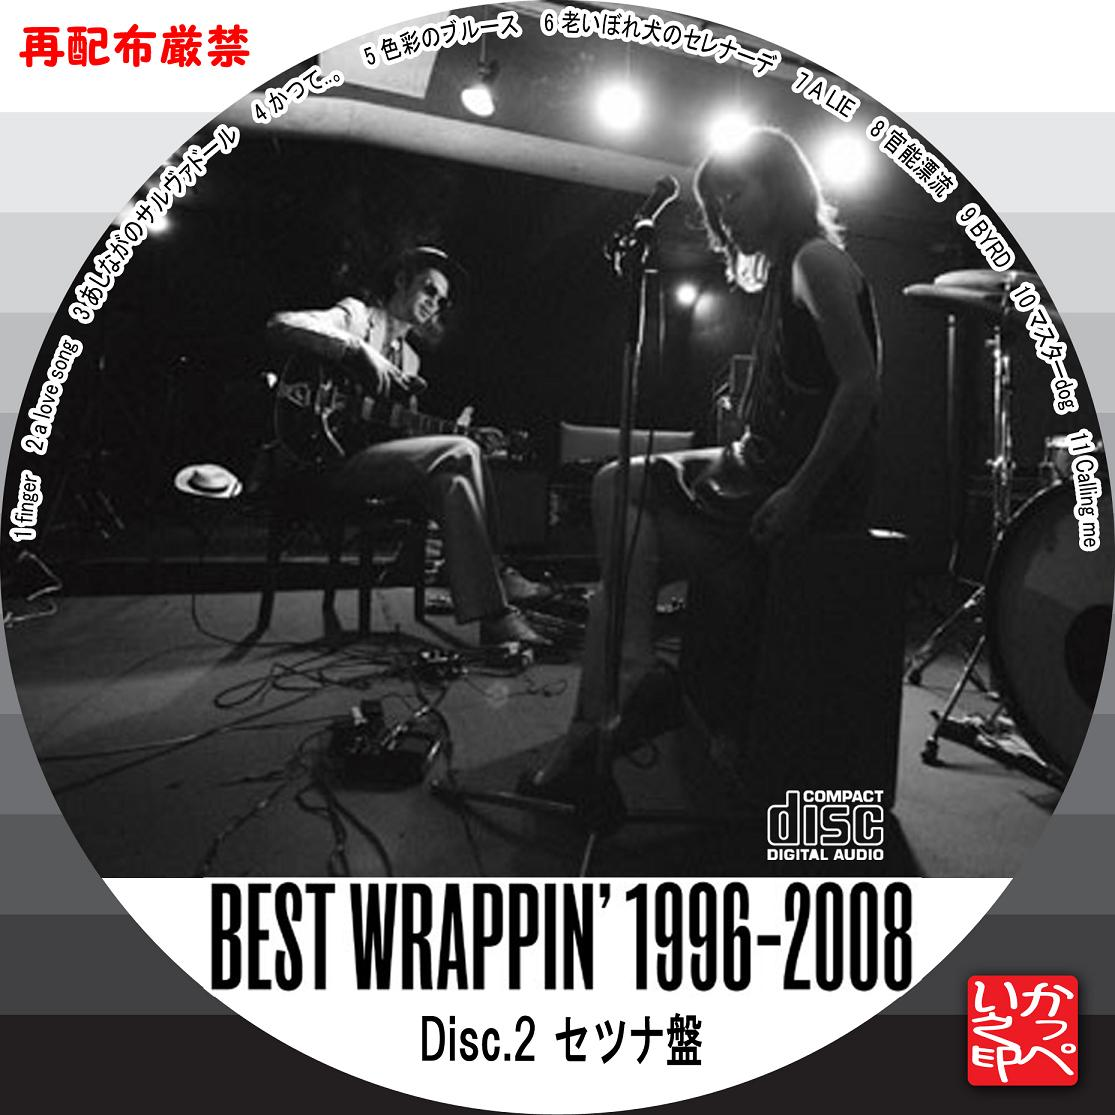 BEST WRAPPIN' 1996-2008 - Japa...